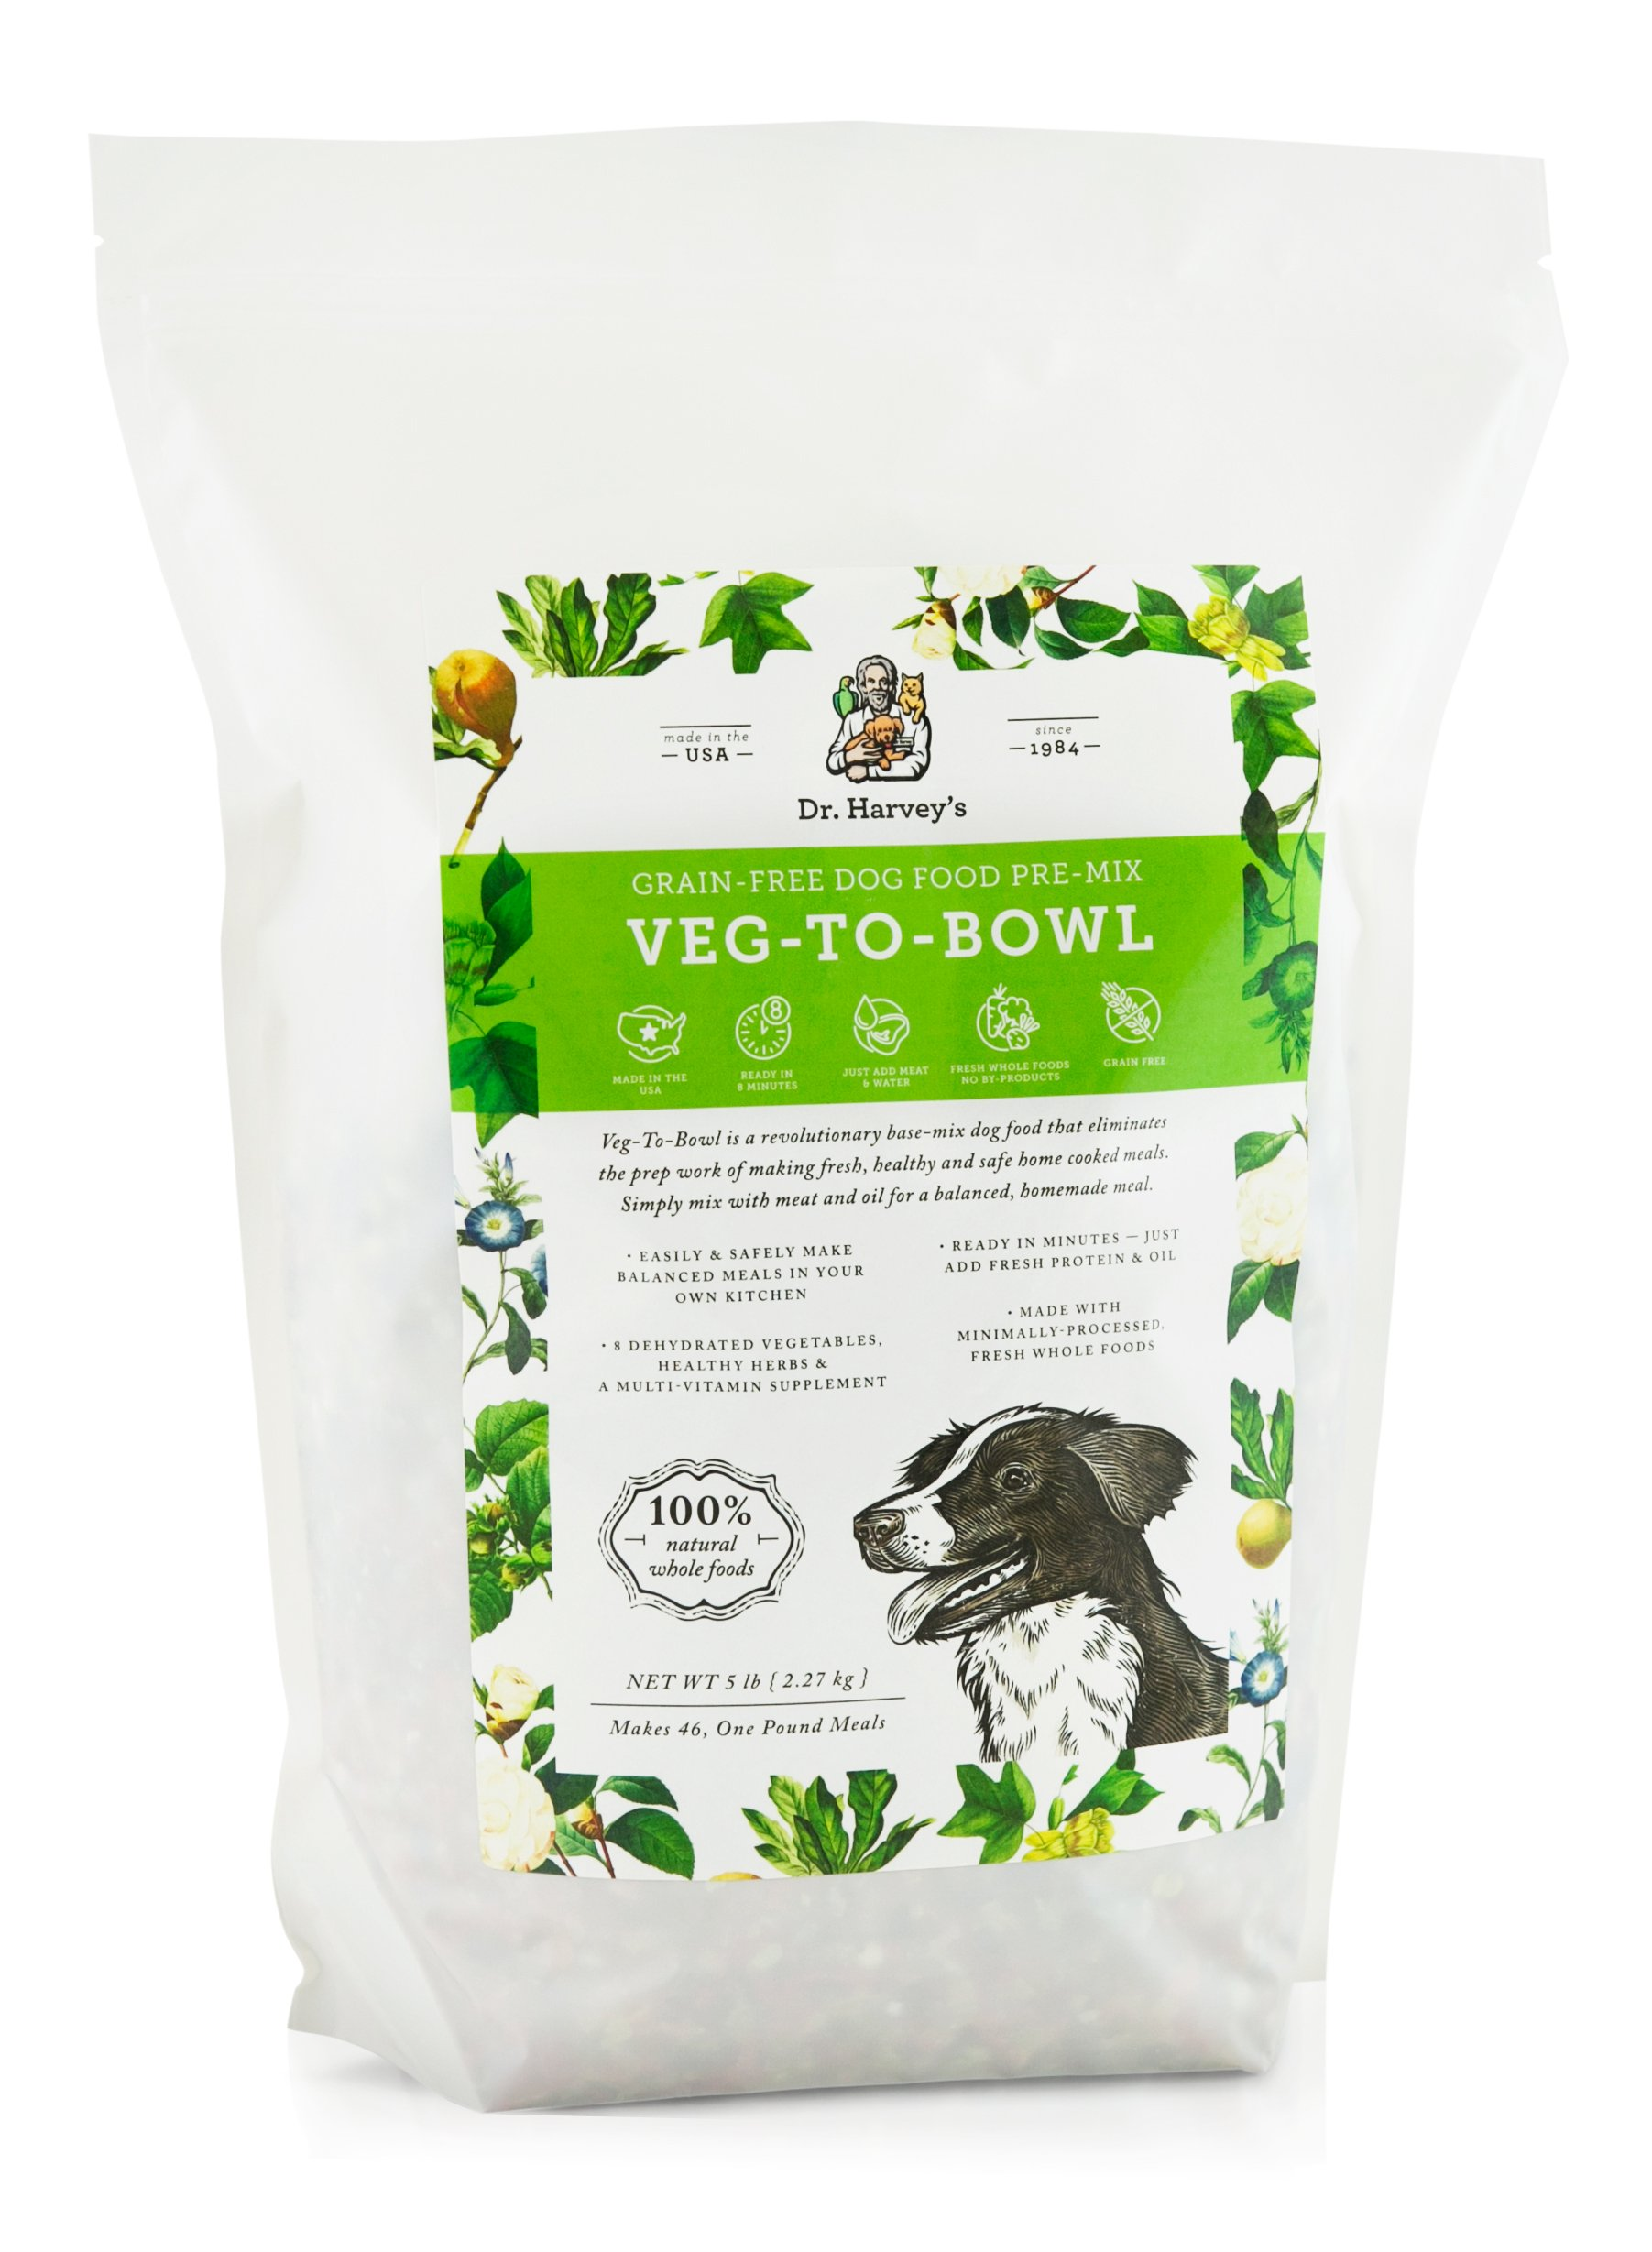 Dr. Harvey's Veg-To-Bowl Grain-free Dog Food Pre-Mix, 5 Pounds by Dr. Harvey's (Image #1)